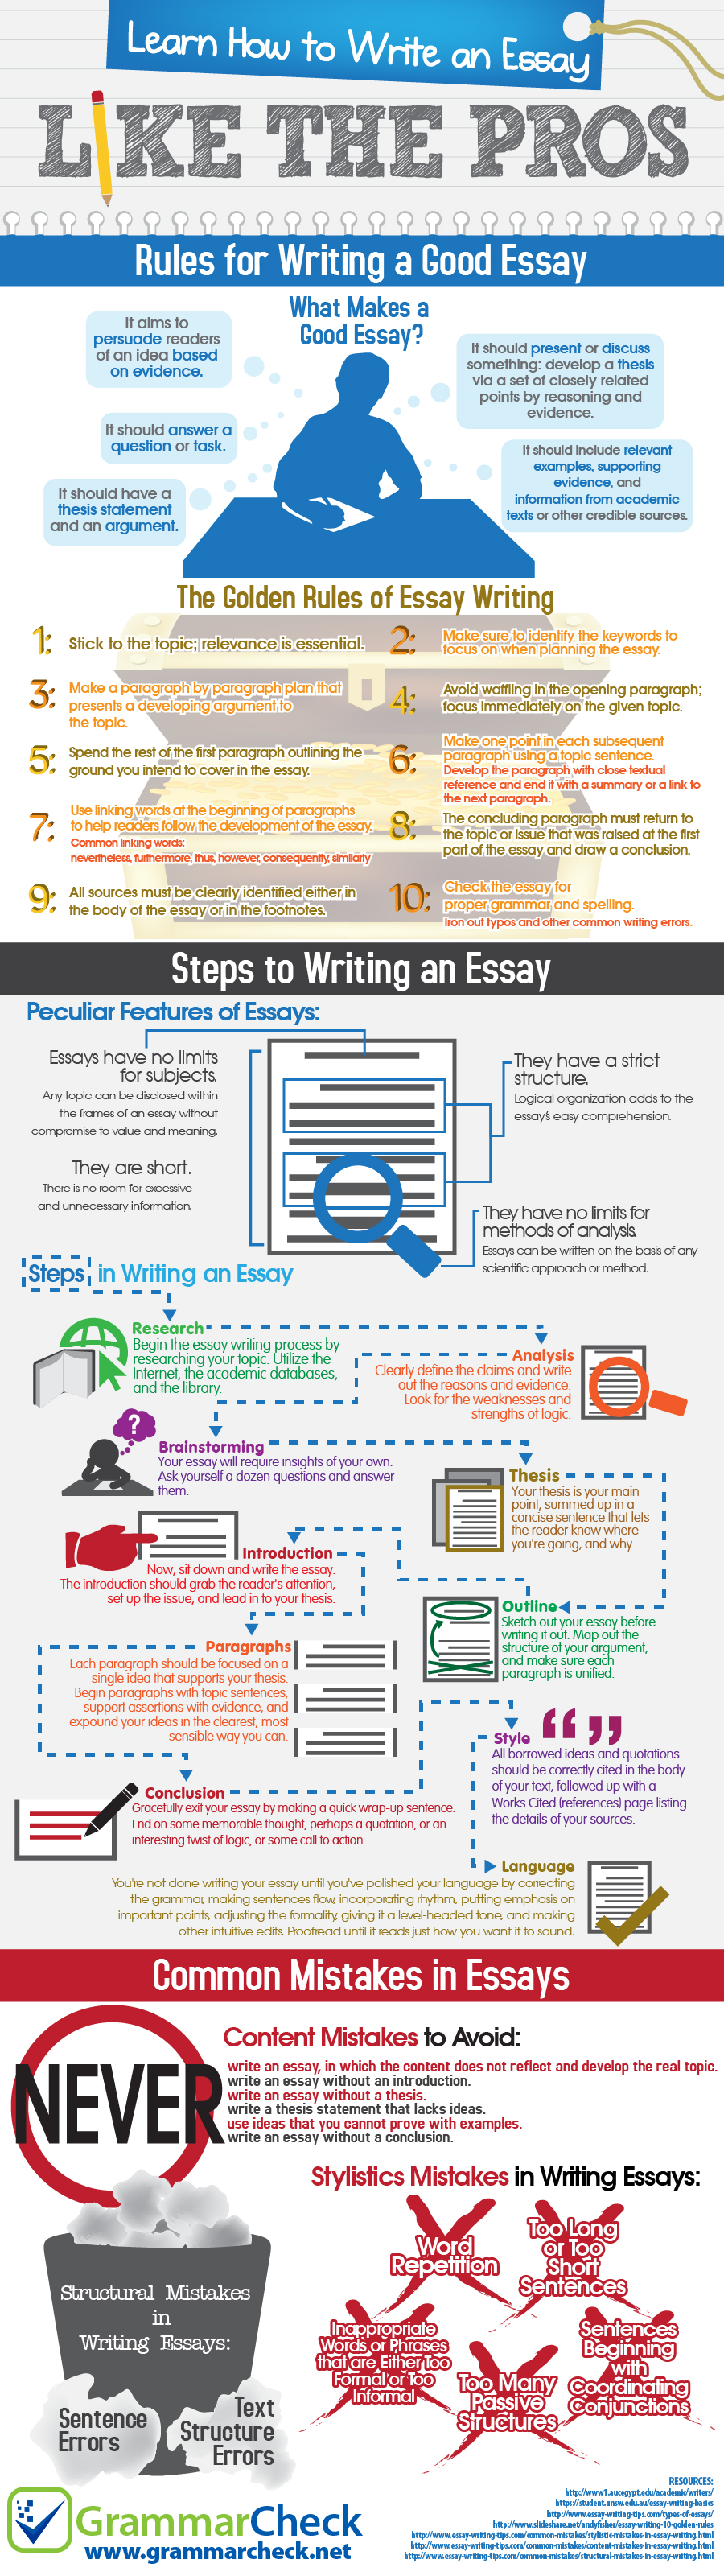 water pollution essay pollution cause and effect essay cdc  essay review service college application essay review service law school essay review service best do my writing an essay about environmental pollution